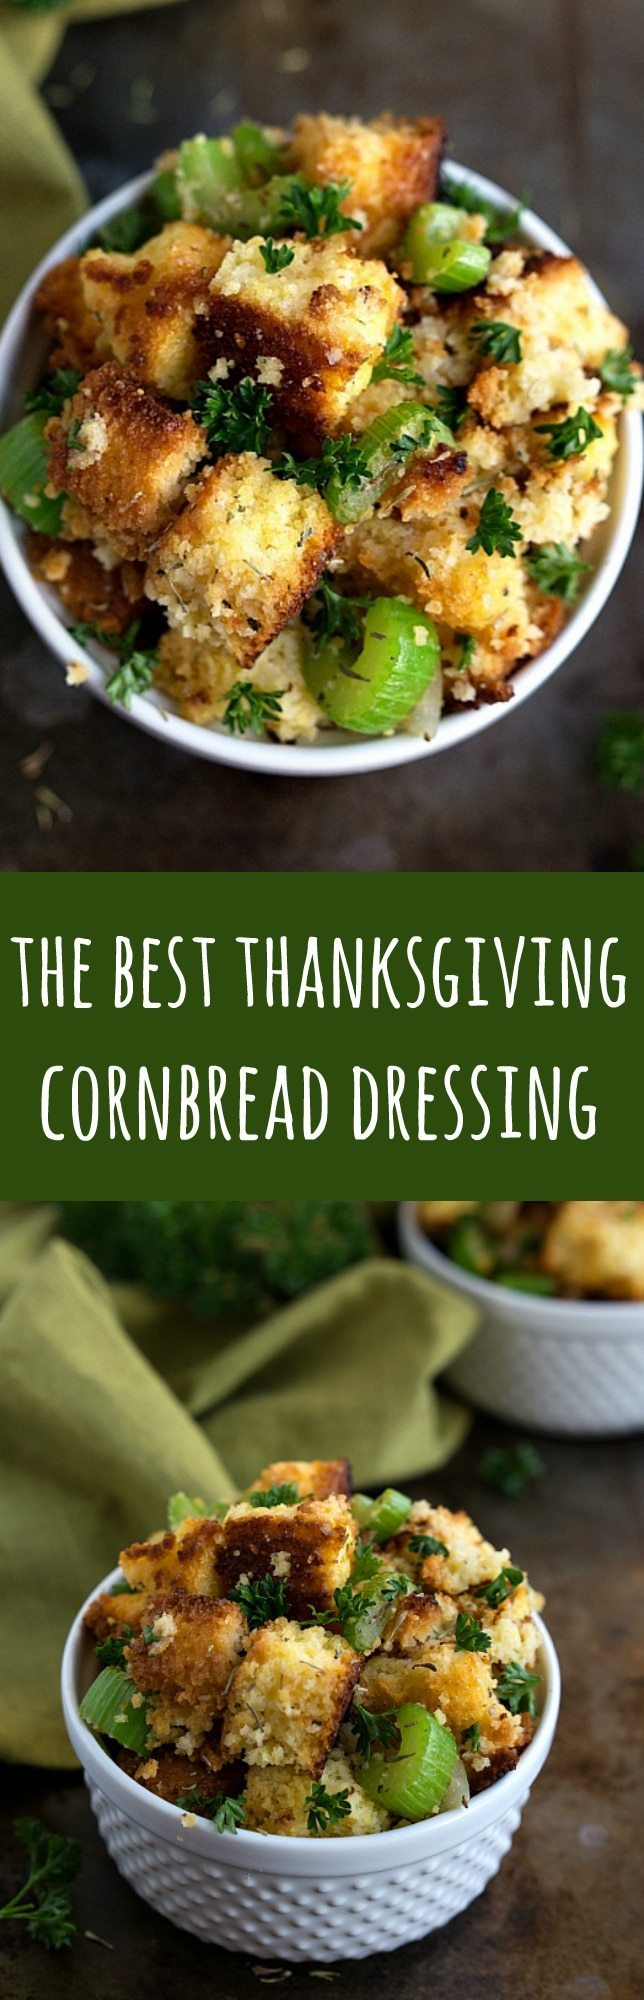 The BEST Thanksgiving Cornbread Dressing (Stuffing) made with cornbread that you can make before the big day!